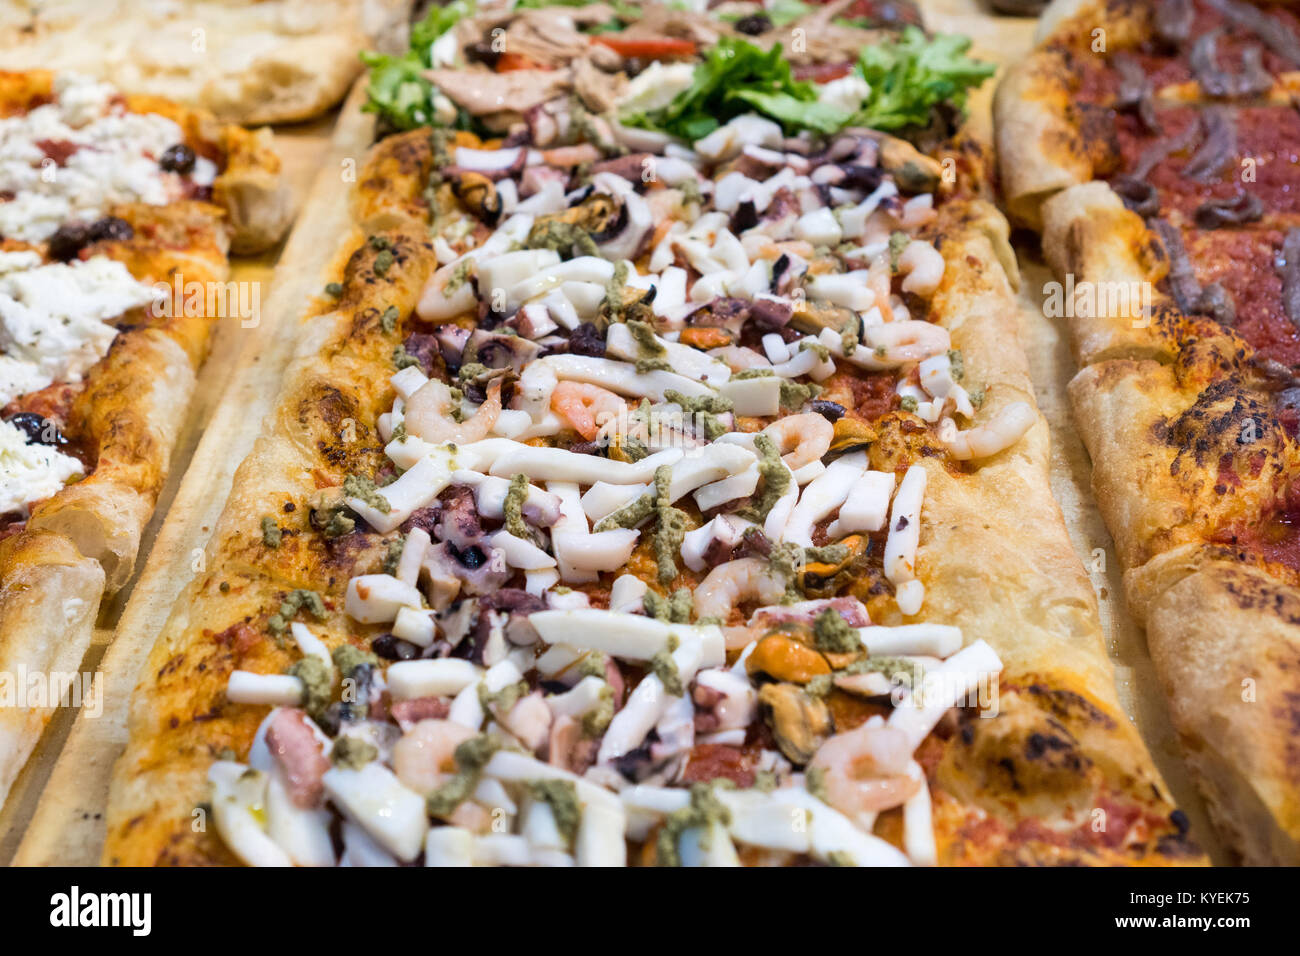 Tasty Italian pizza ready for eating - Stock Image